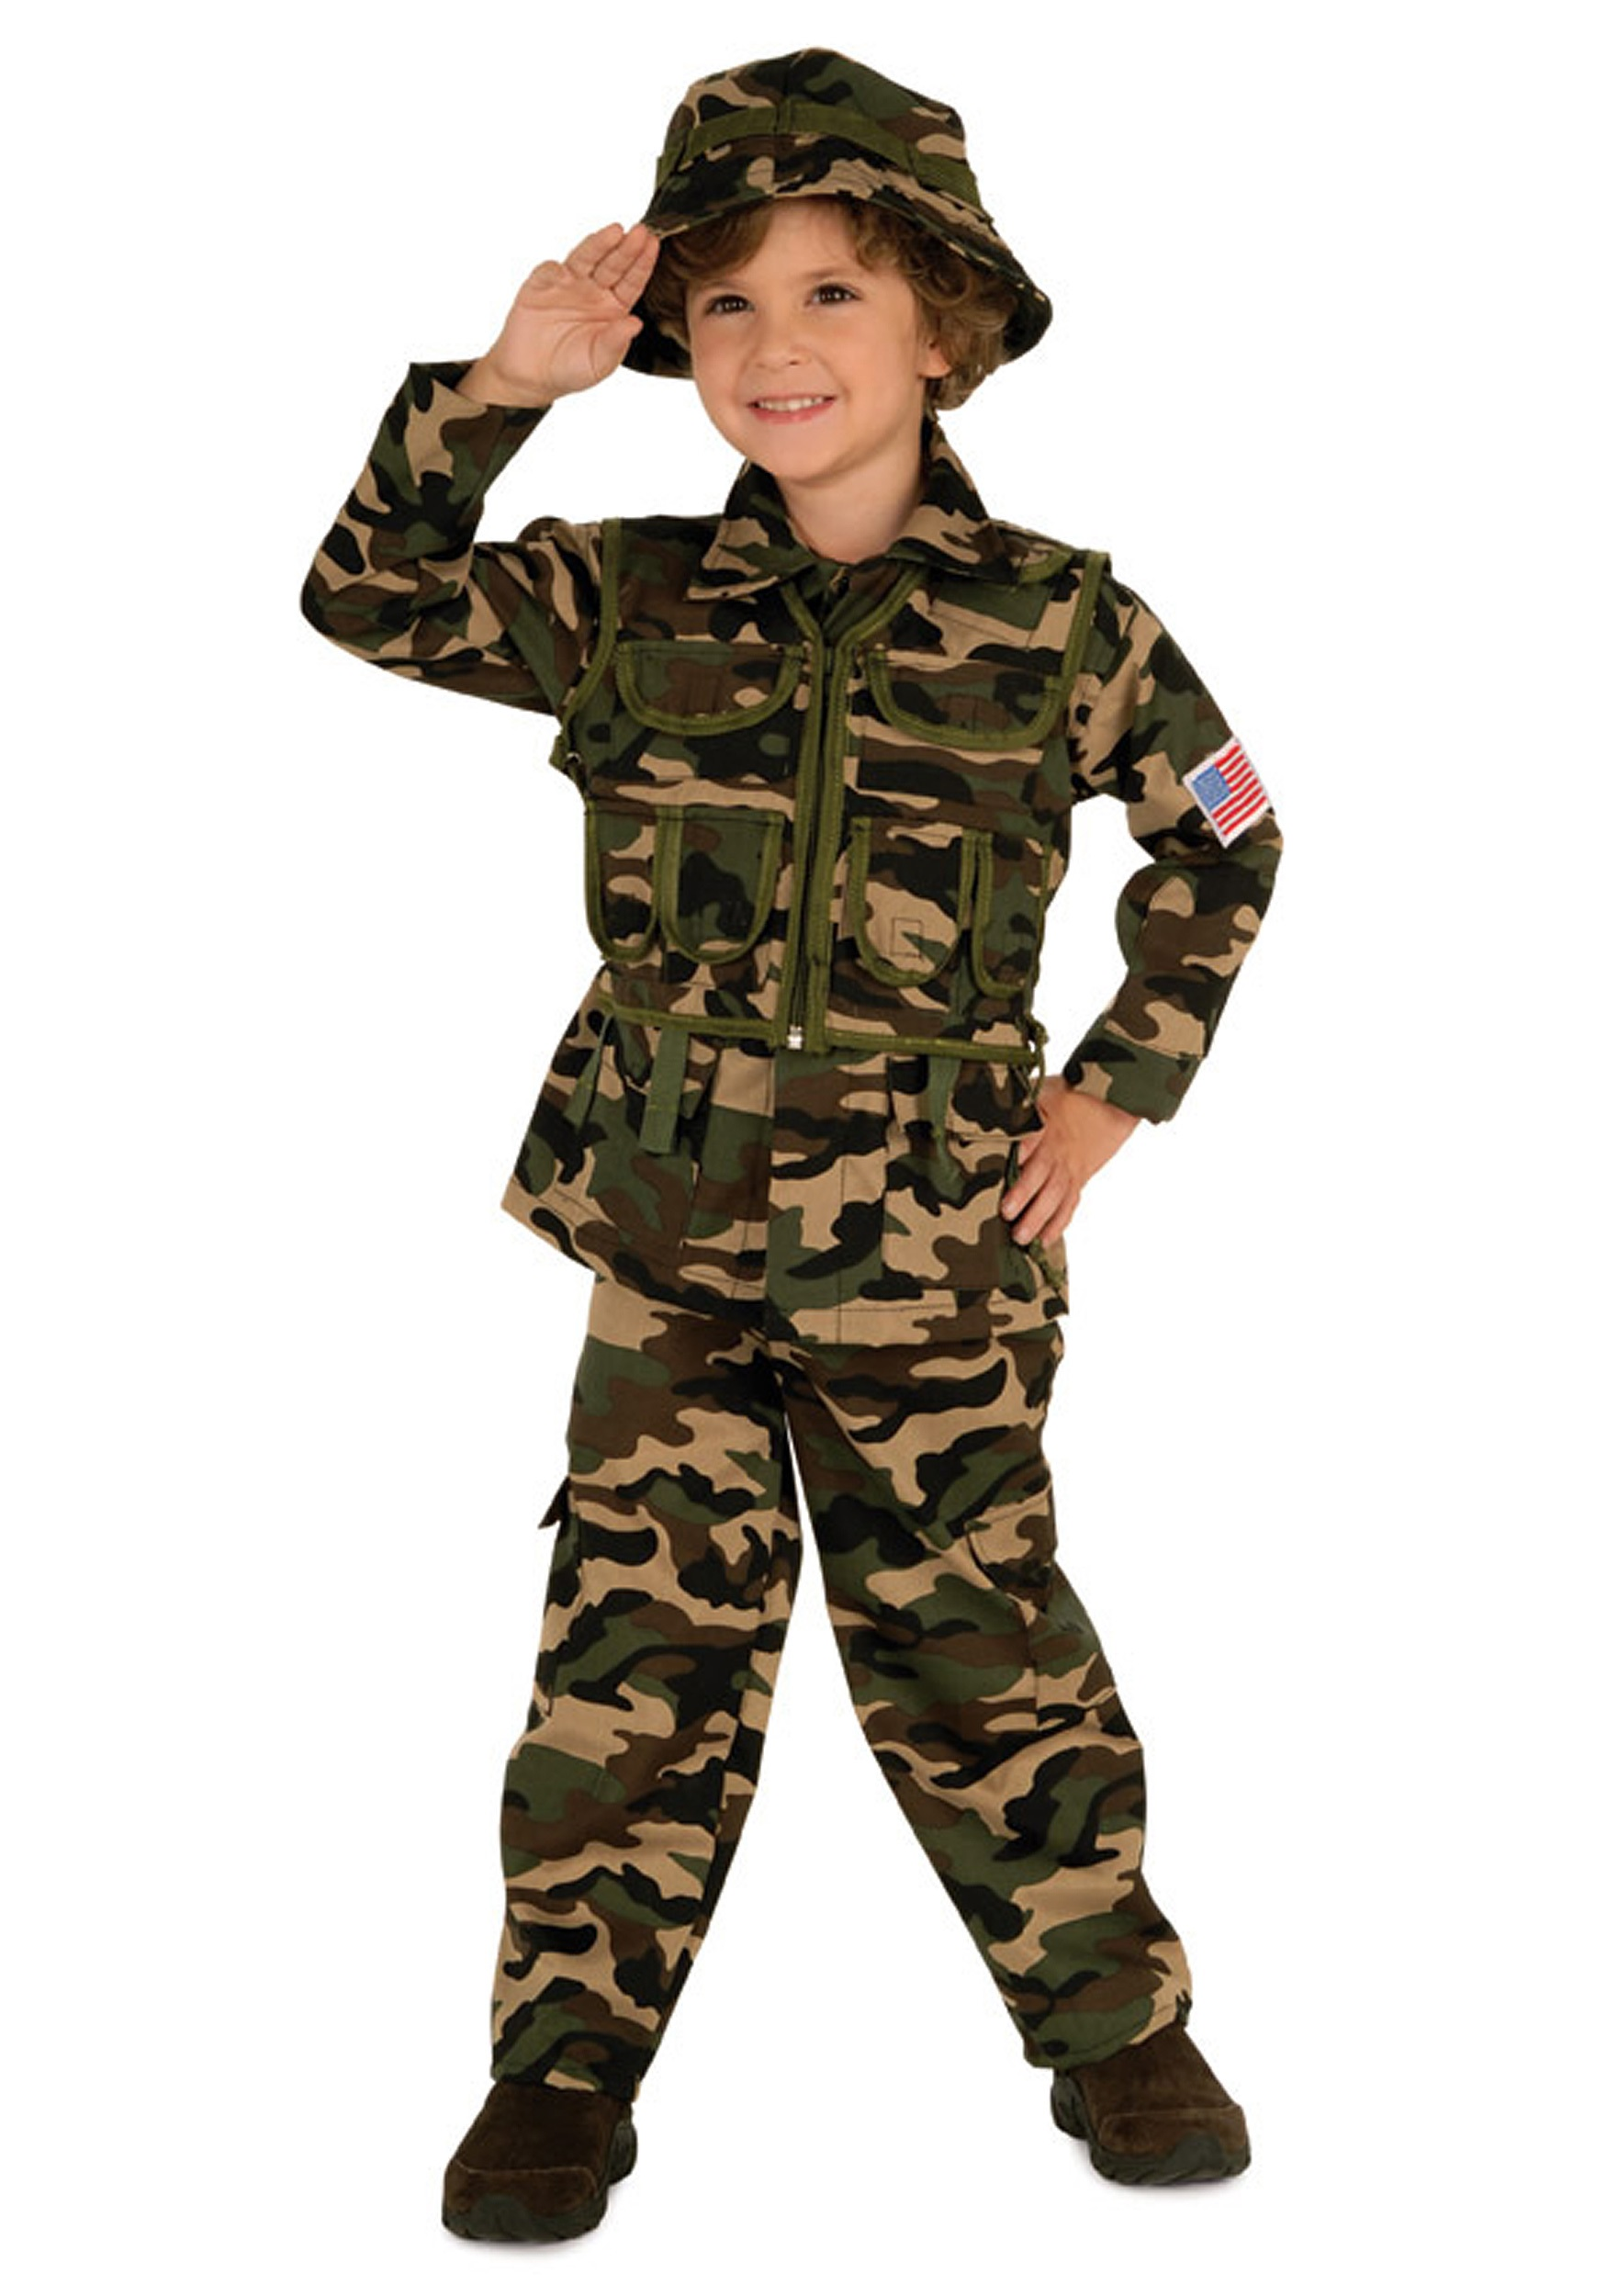 Child Army Costume  sc 1 st  Halloween Costume & Child Army Costume - Kids Soldier Halloween Army Costumes